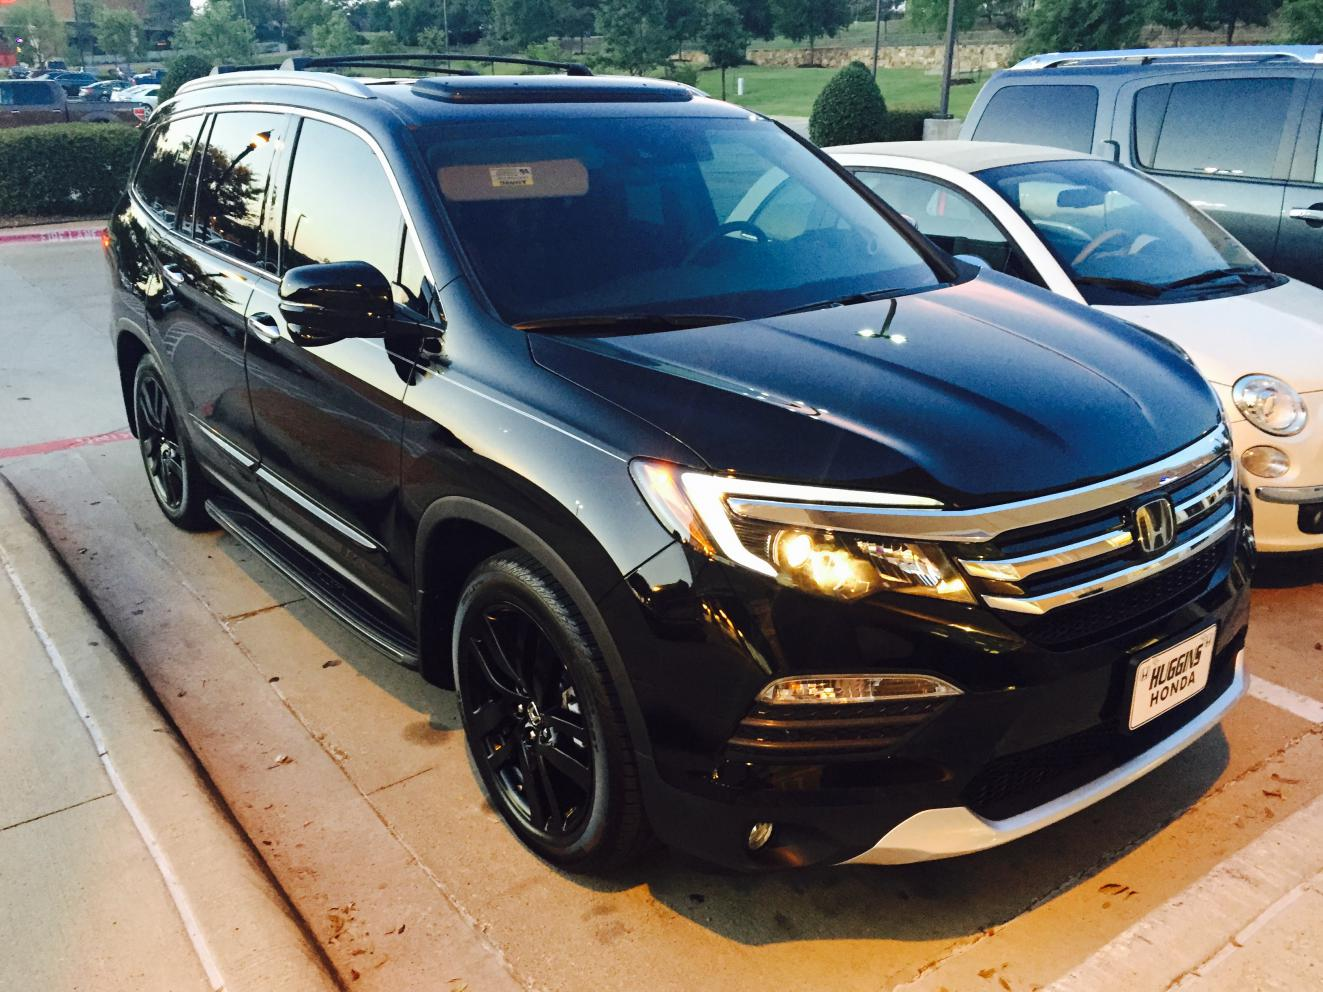 2011 Touring Traded In On 2016 Touring Black On Black On Black Honda Pilot Honda Pilot Forums